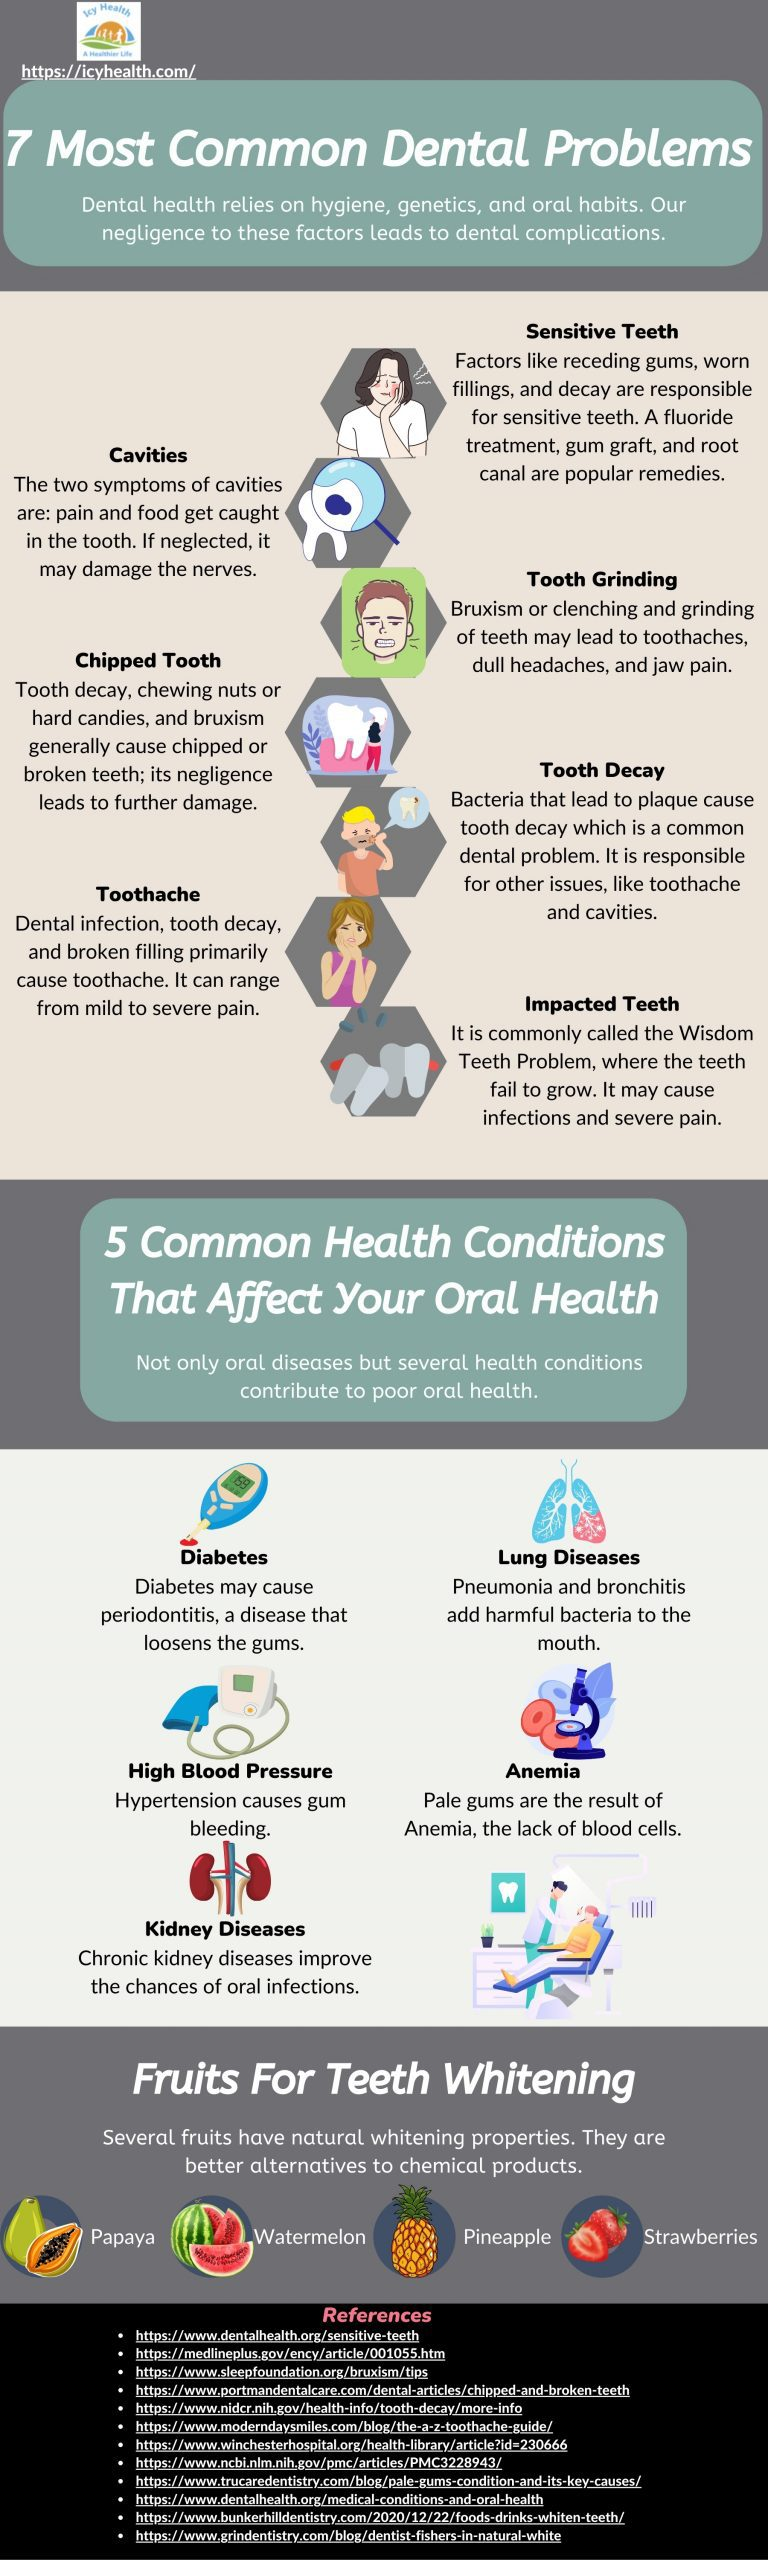 7 Most Common Dental Problems